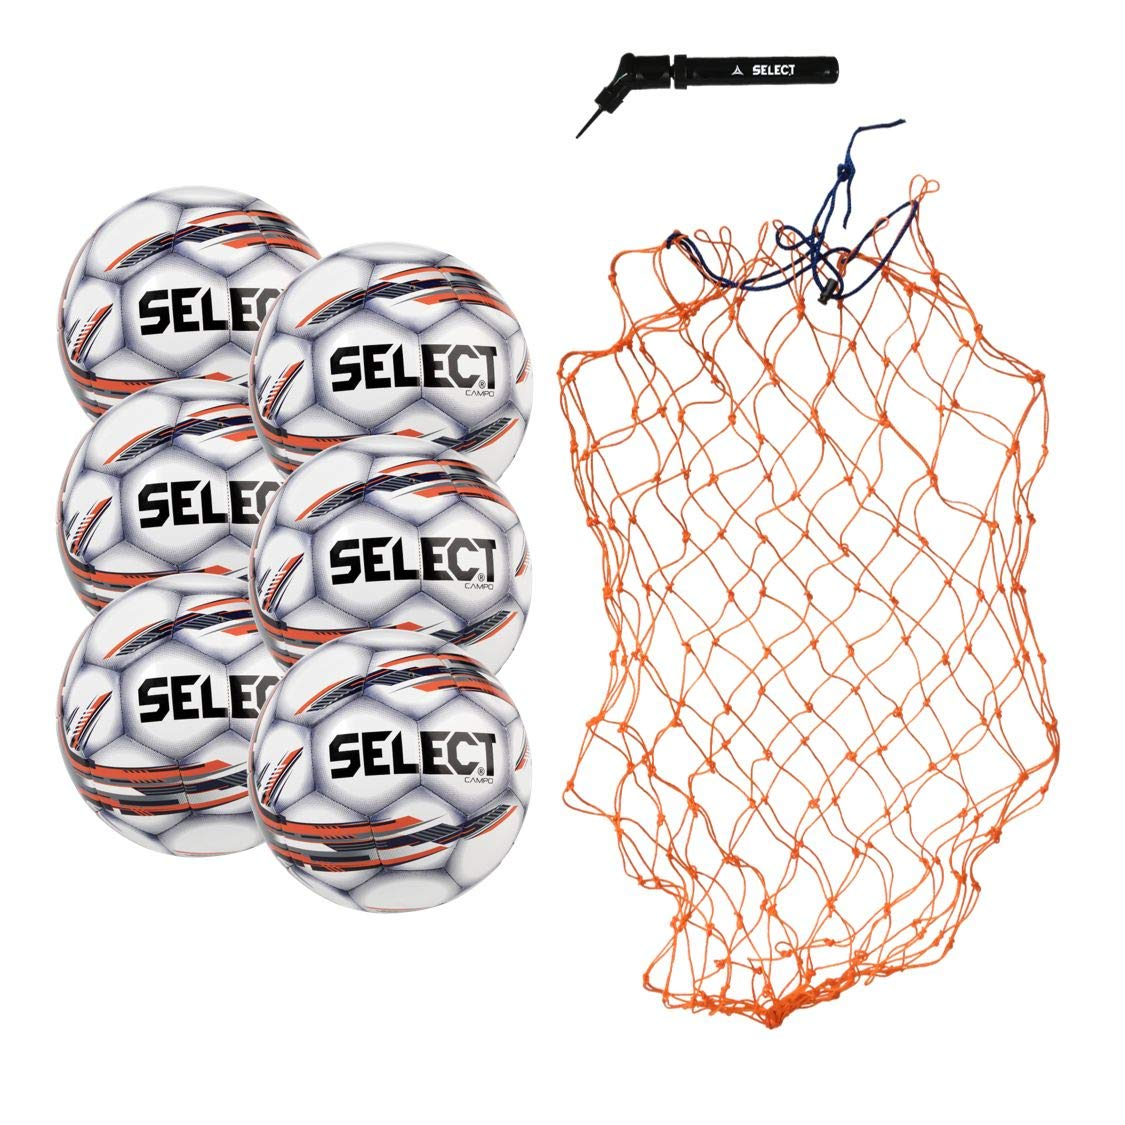 Select Campo Soccer Ball Package - Pack of 6 Soccer Balls with Ball Net and Hand Pump, White, 3